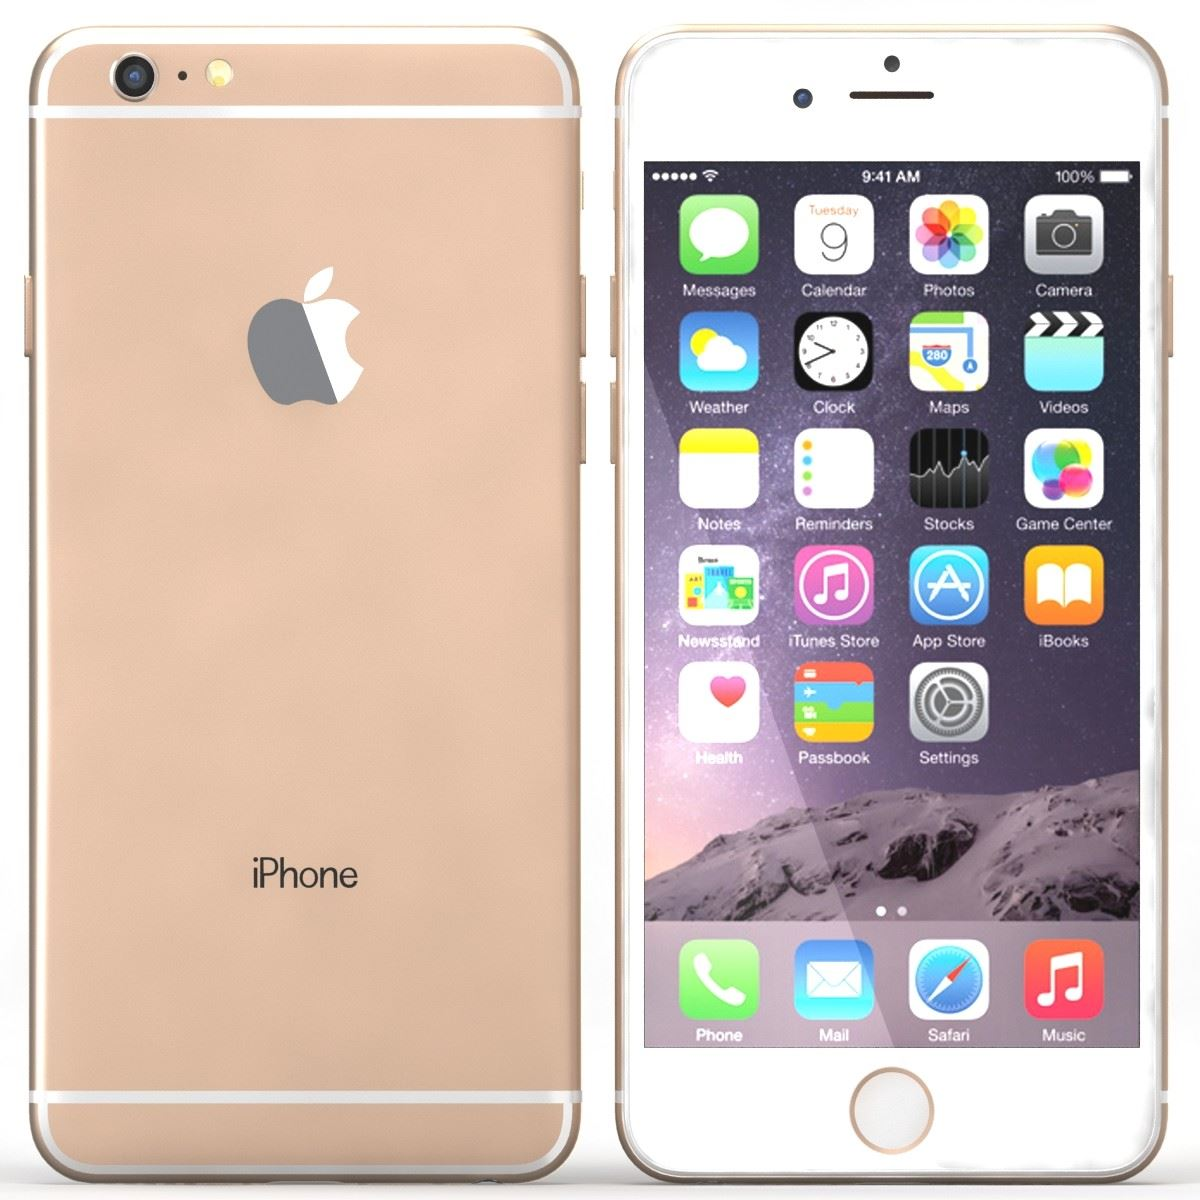 iphone 6 price t mobile apple iphone 6 16gb smartphone t mobile gold mint 1394